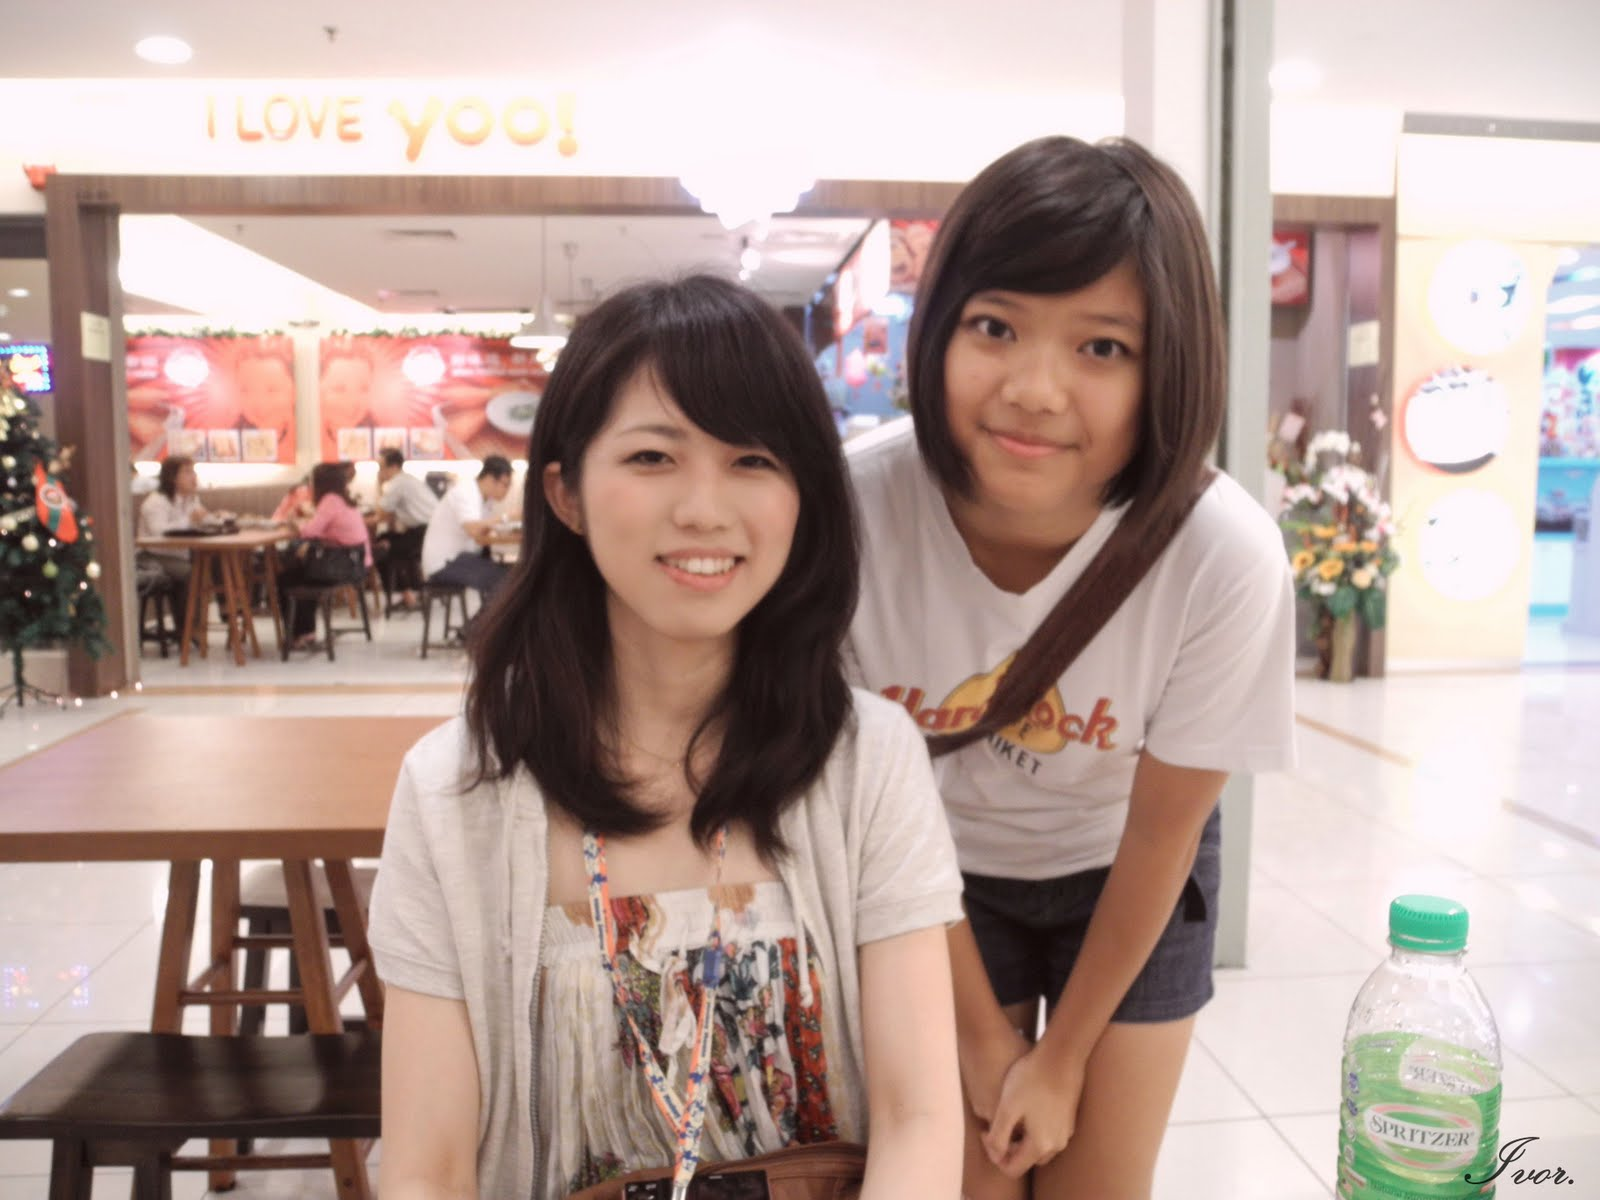 japanese girl vagina <b>...</b> <b>japanese girl</b> to us &amp; hang out with her. Joy&#39;s mum join the lion&#39;s club <b>...</b>